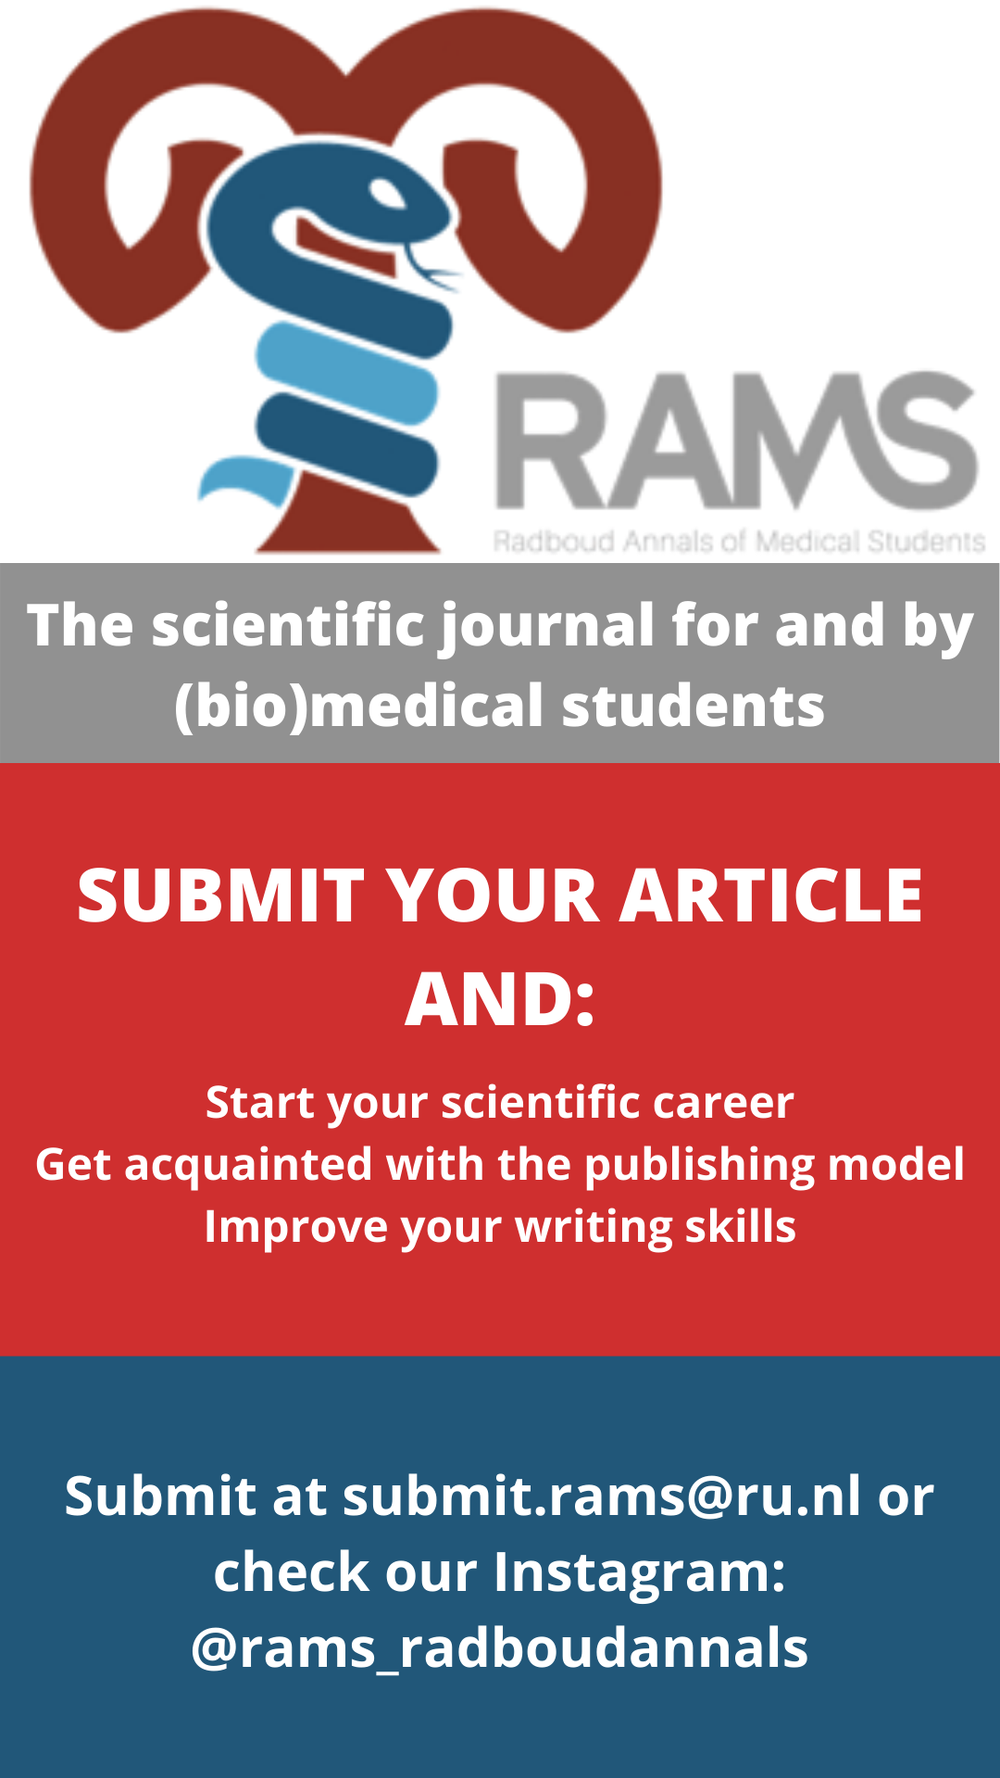 The_scientific_journal_for_and_by_biomedical_students_1.png